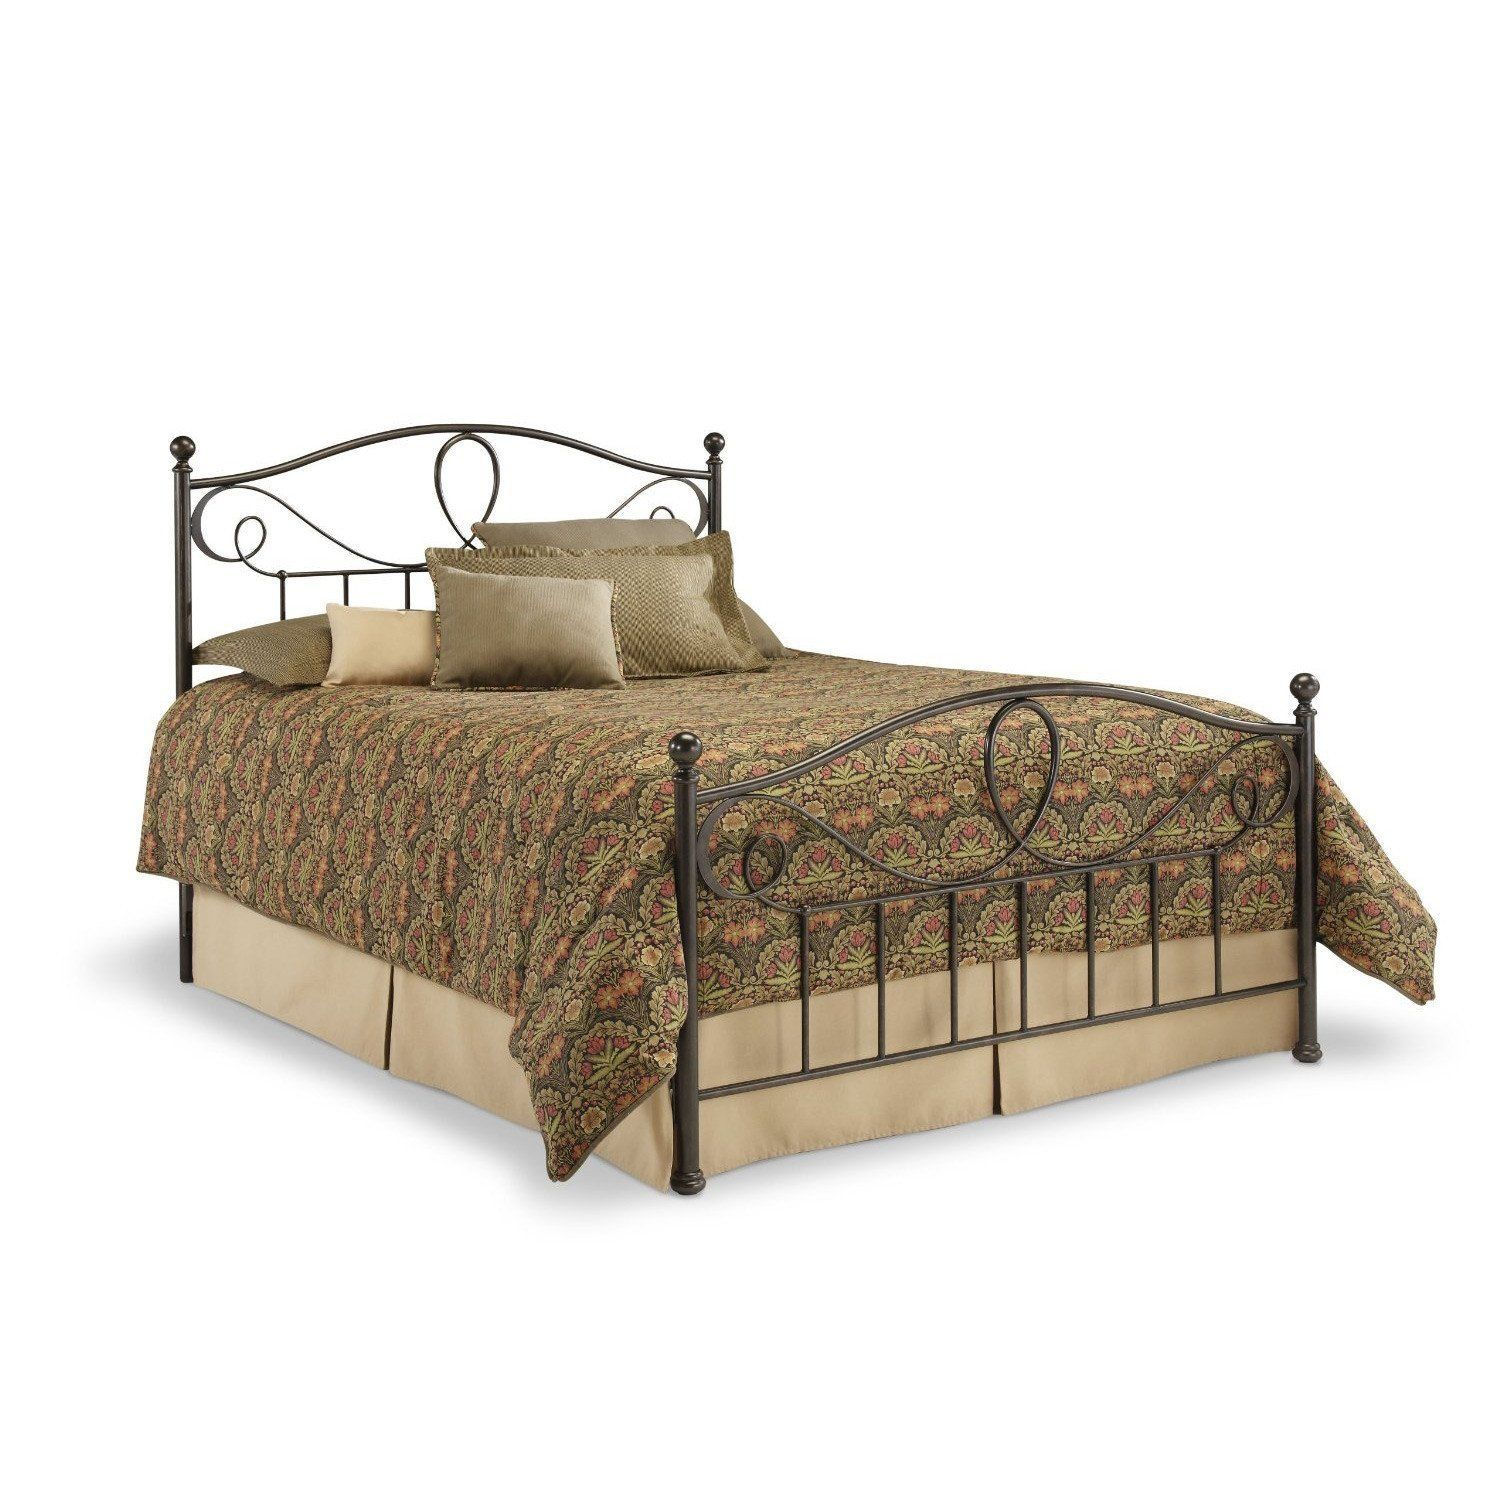 Queen size Metal Bed Frame with Headboard and Footboard in French ...